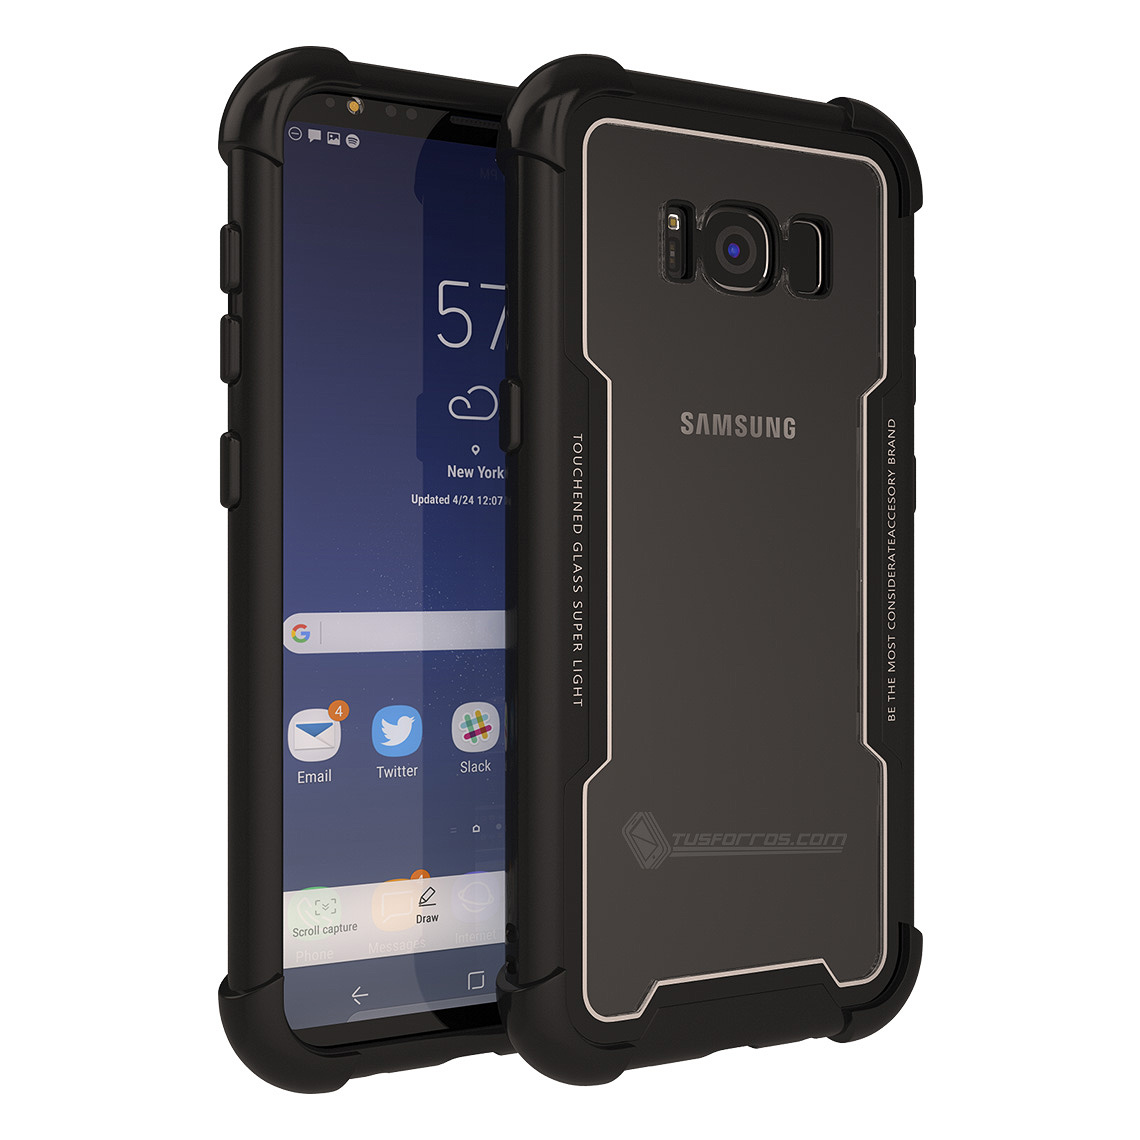 Samsung Galaxy S8 Forros Anti-Shock Edge Black BackCover Cristal Clear